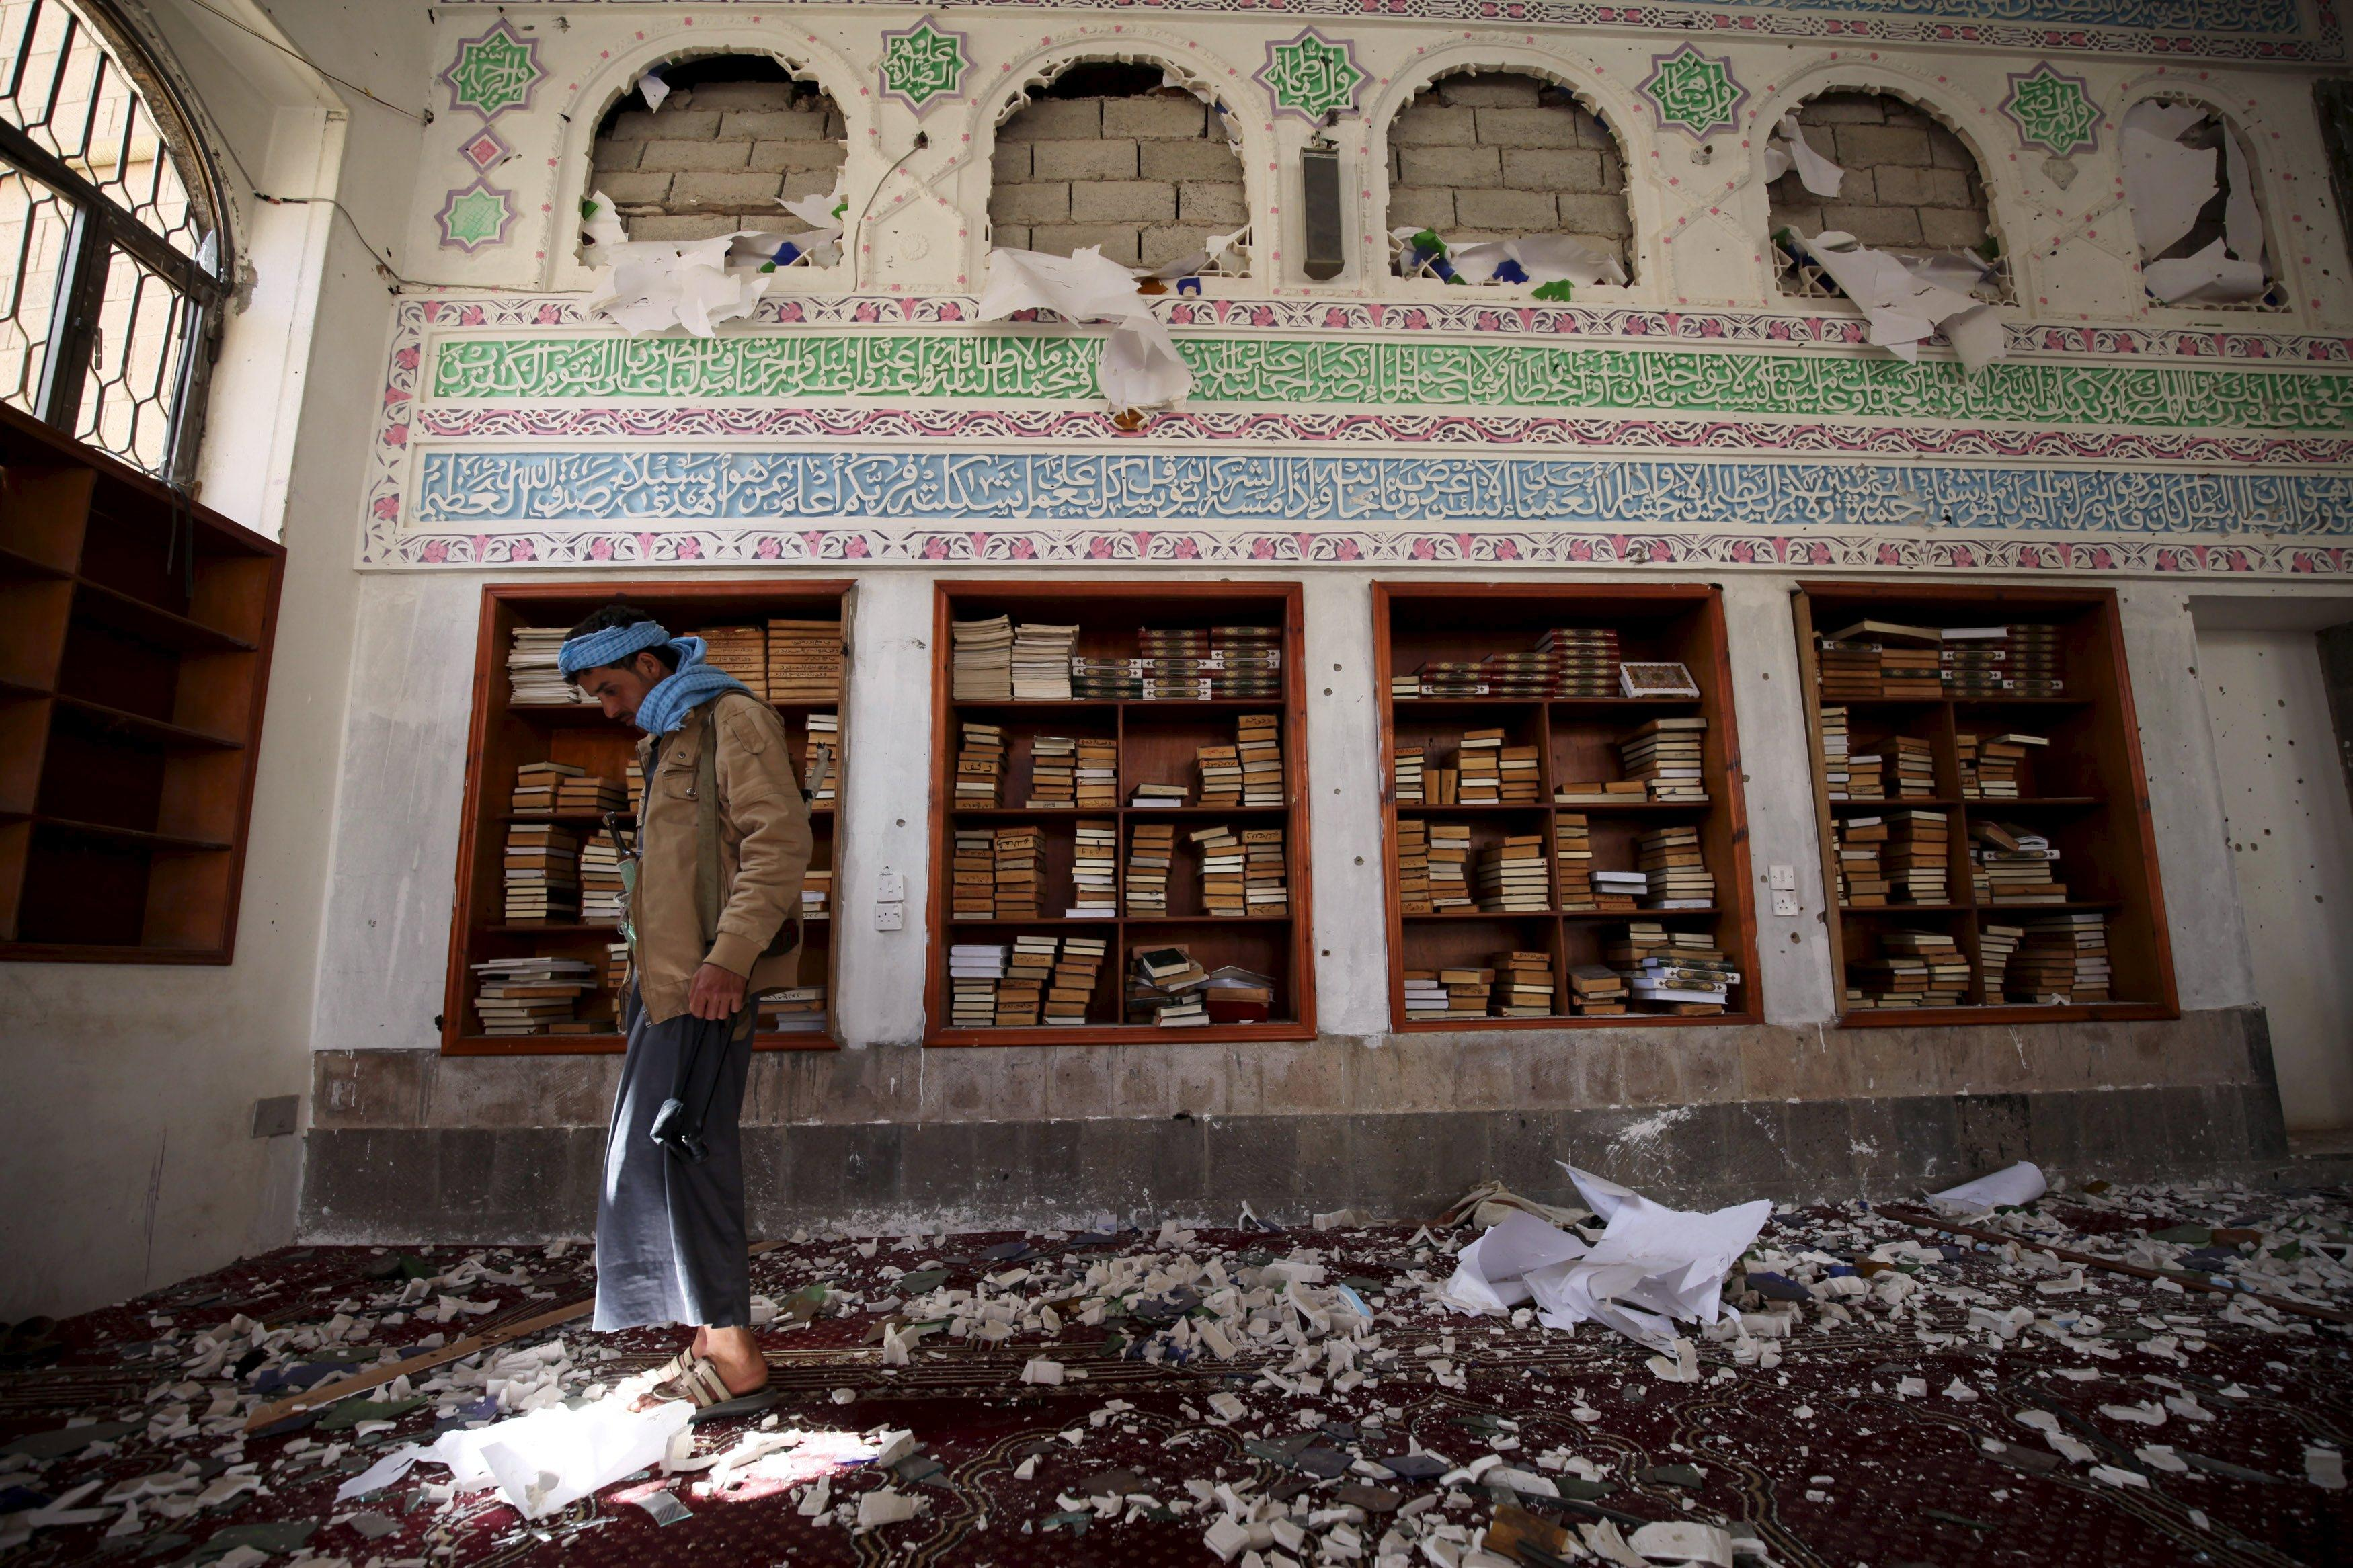 A Houthi militant looks on after a suicide bomb attack at a mosque in Sanaa March 20, 2015. At least 87 people were killed when four suicide bombers blew themselves up in two mosques in the Yemeni capital Sanaa during Friday prayers, a medical source told Reuters. The source said at least 260 people were wounded in the blasts. Both mosques are known to be used mainly by supporters of the Shi'ite Muslim Houthi group which has seized control of the government. REUTERS/Mohamed al-Sayaghi TPX IMAGES OF THE DAY